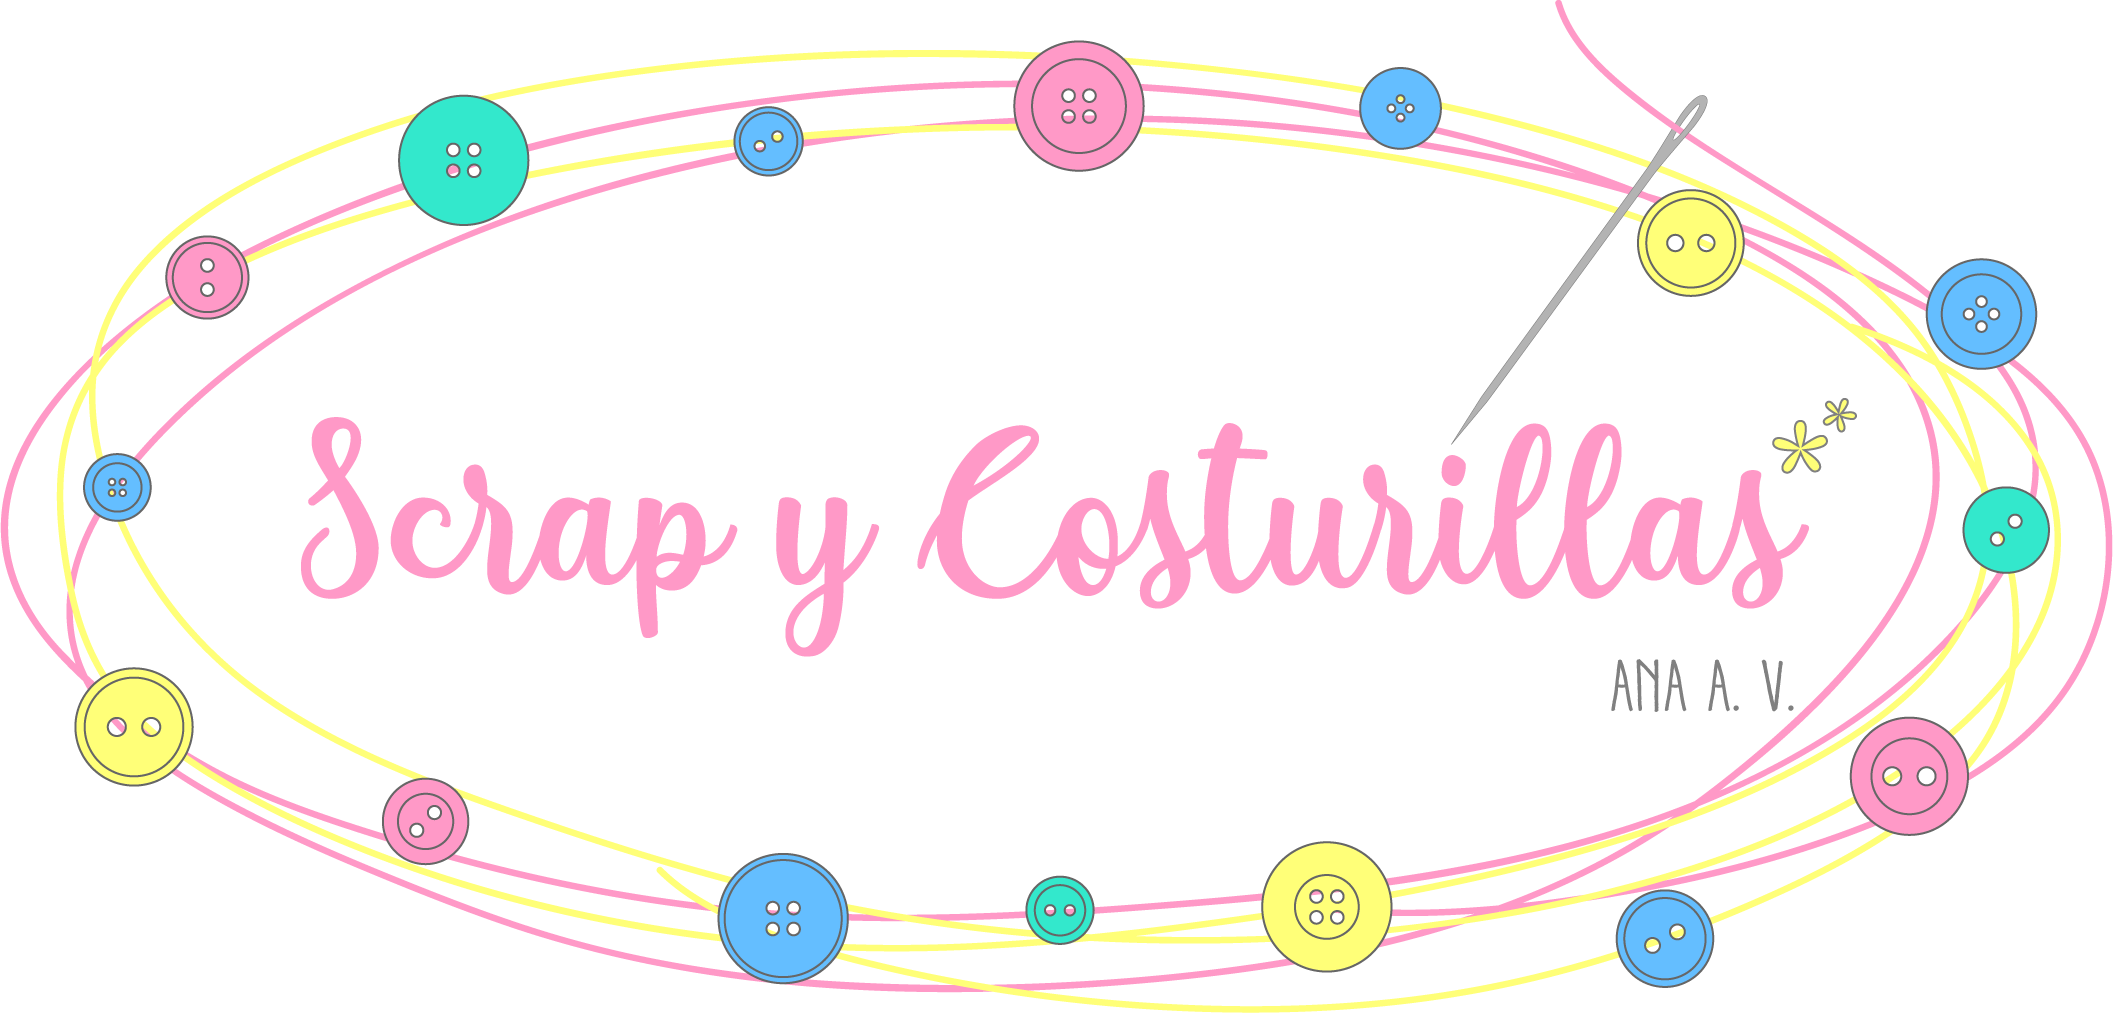 Scrap y Costurillas, logotipo